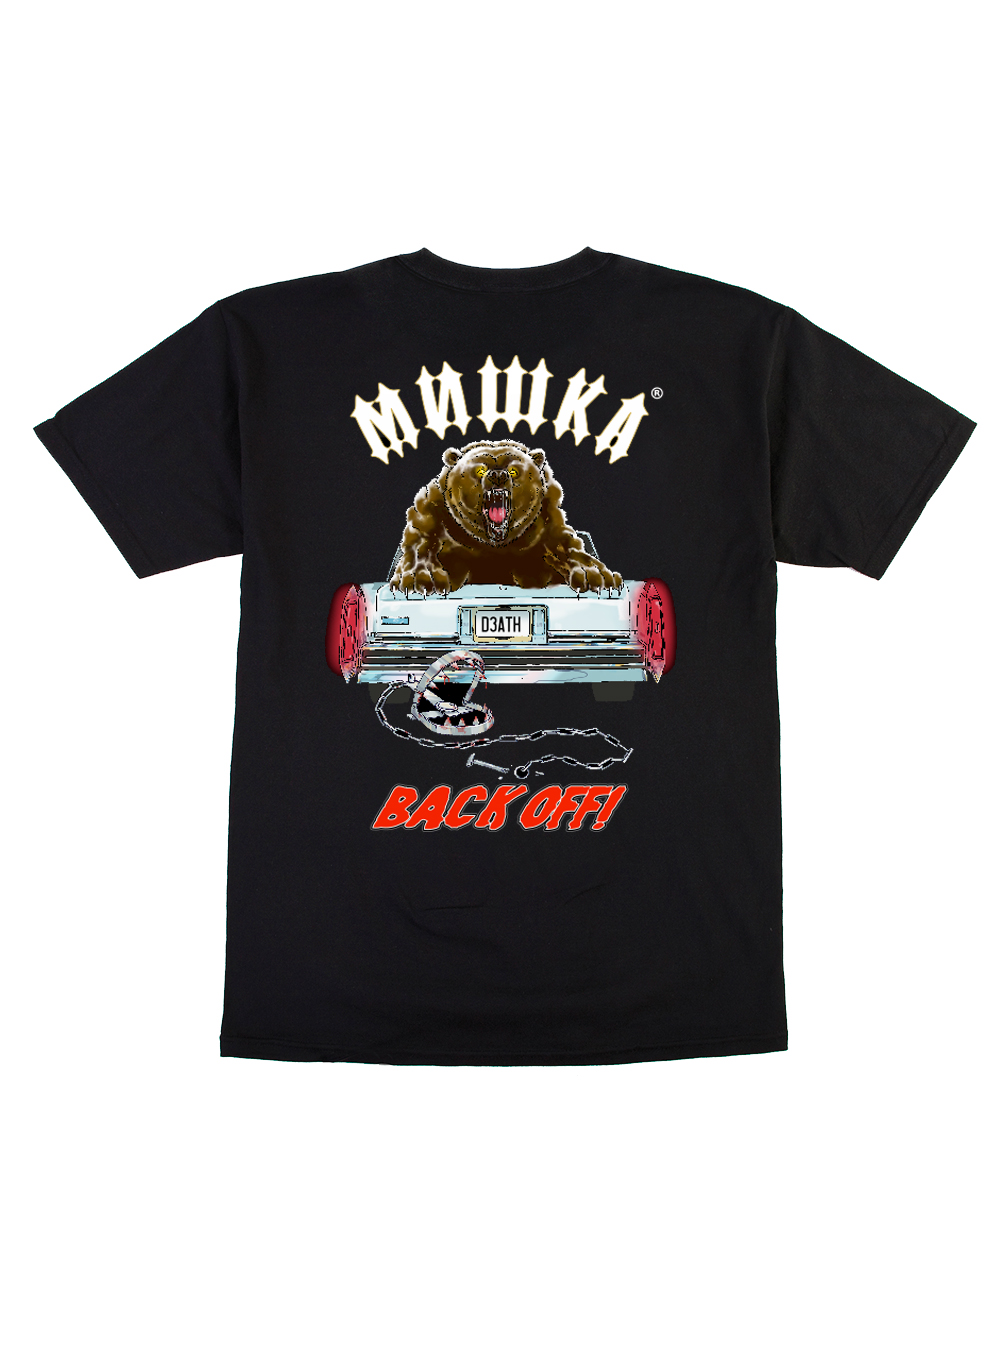 Back Off! T-Shirt